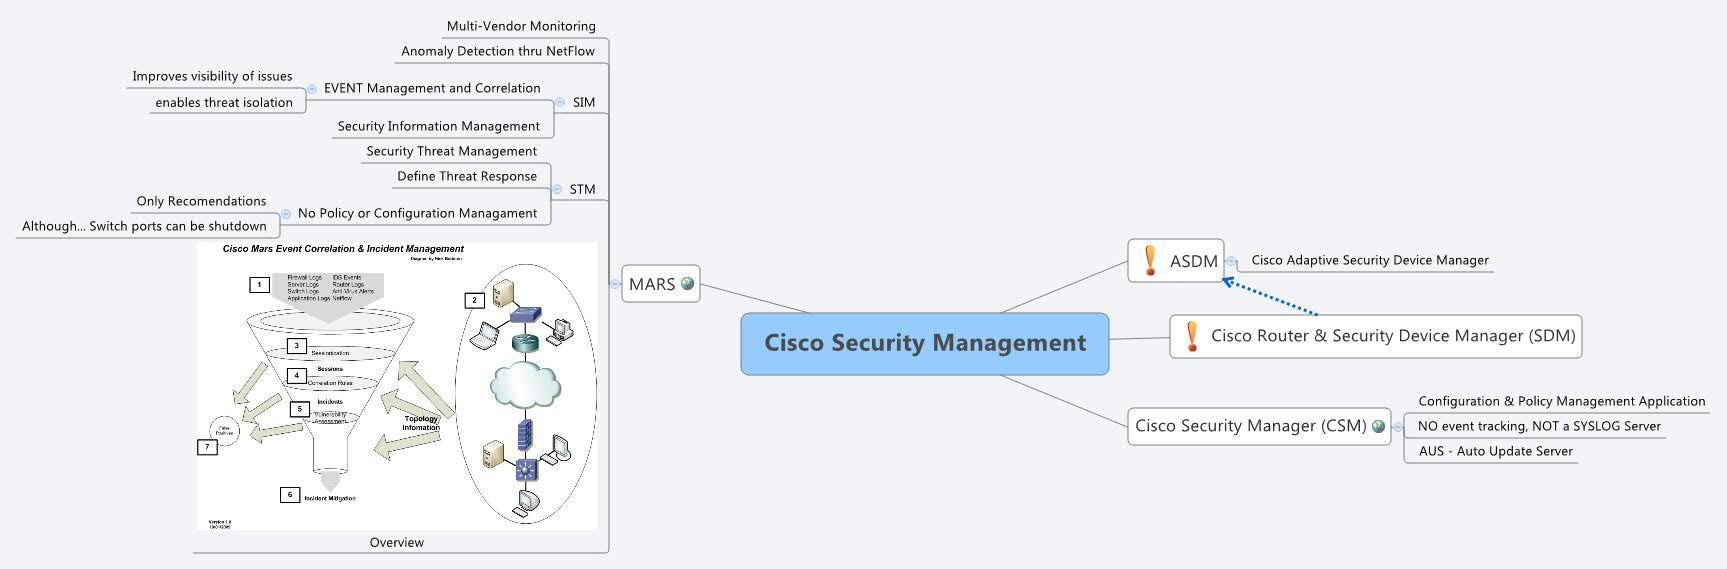 Cisco Security Management - XMind - Mind Mapping Software